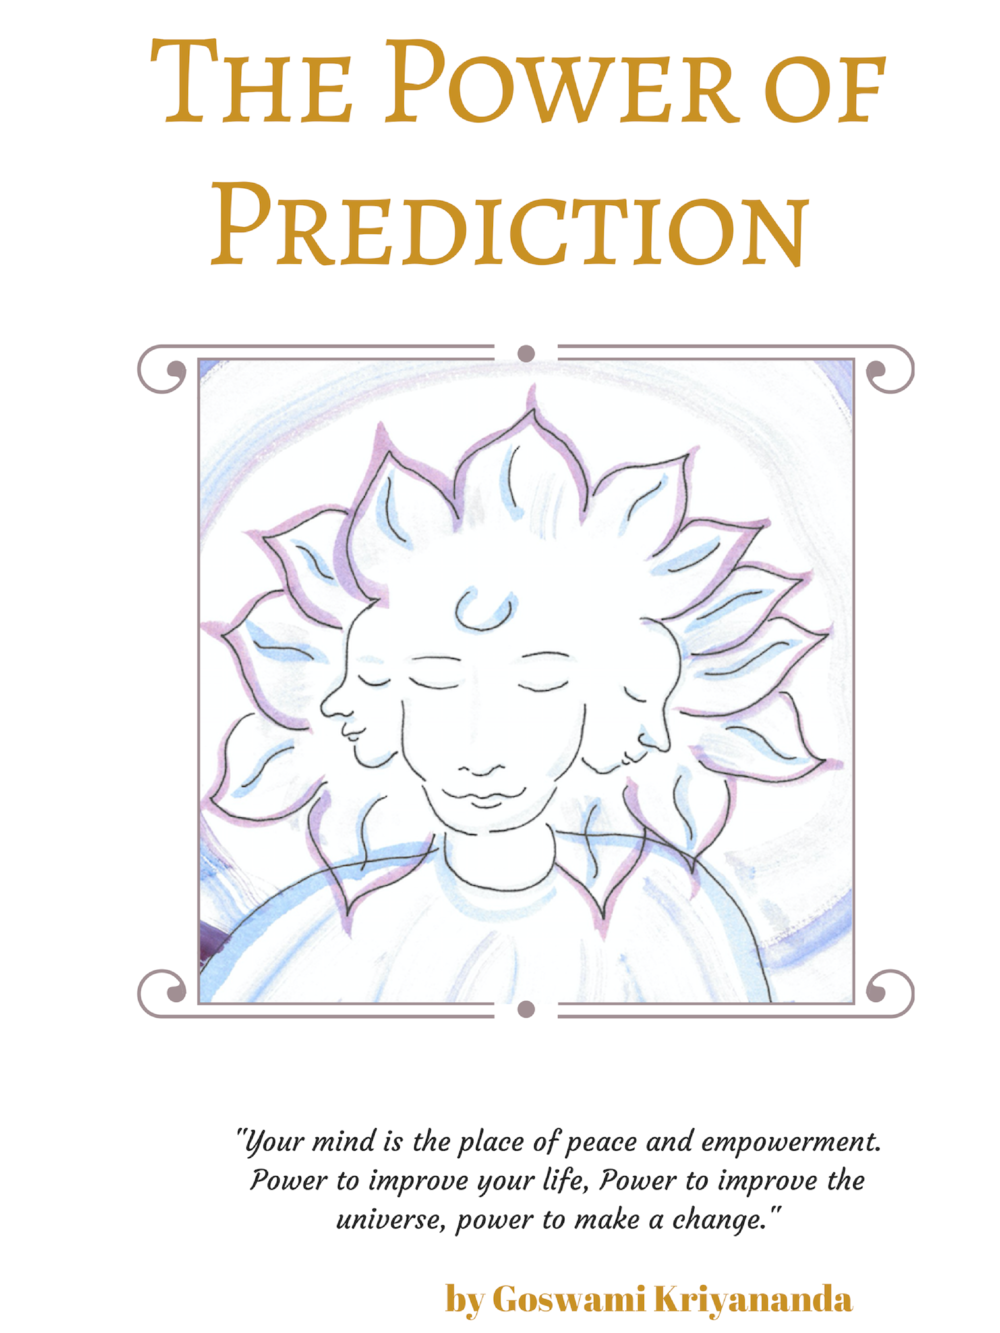 The Power of Prediction - $5